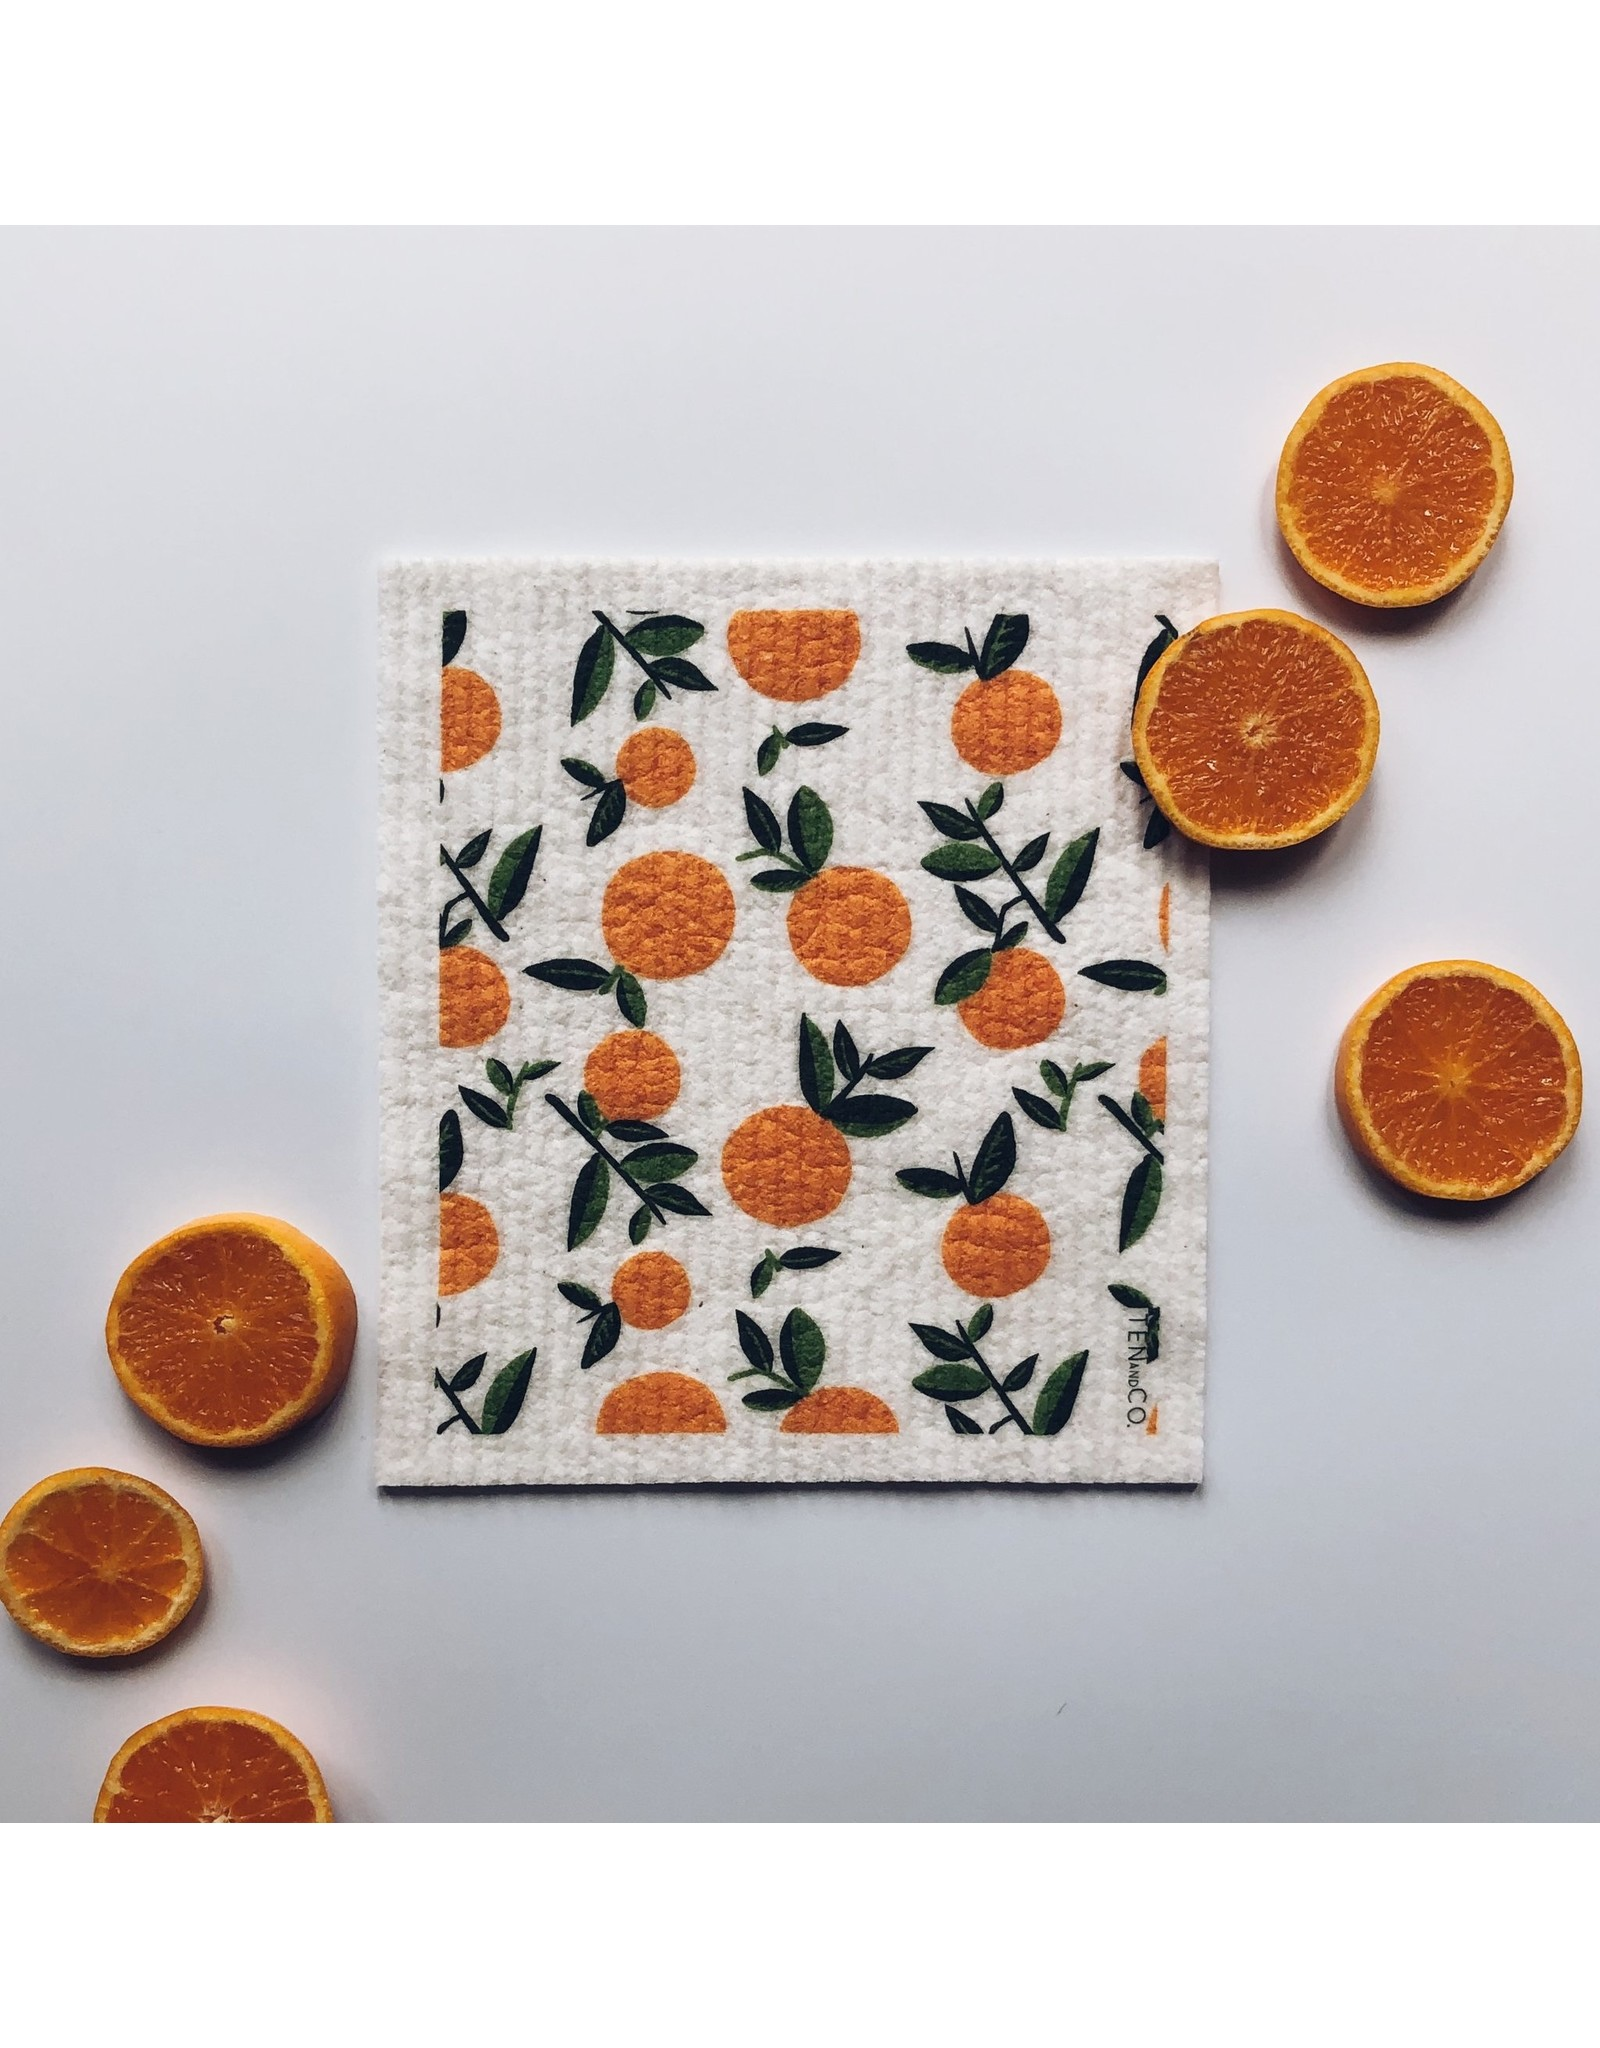 Ten & Co Citrus Orange Sponge Cloth